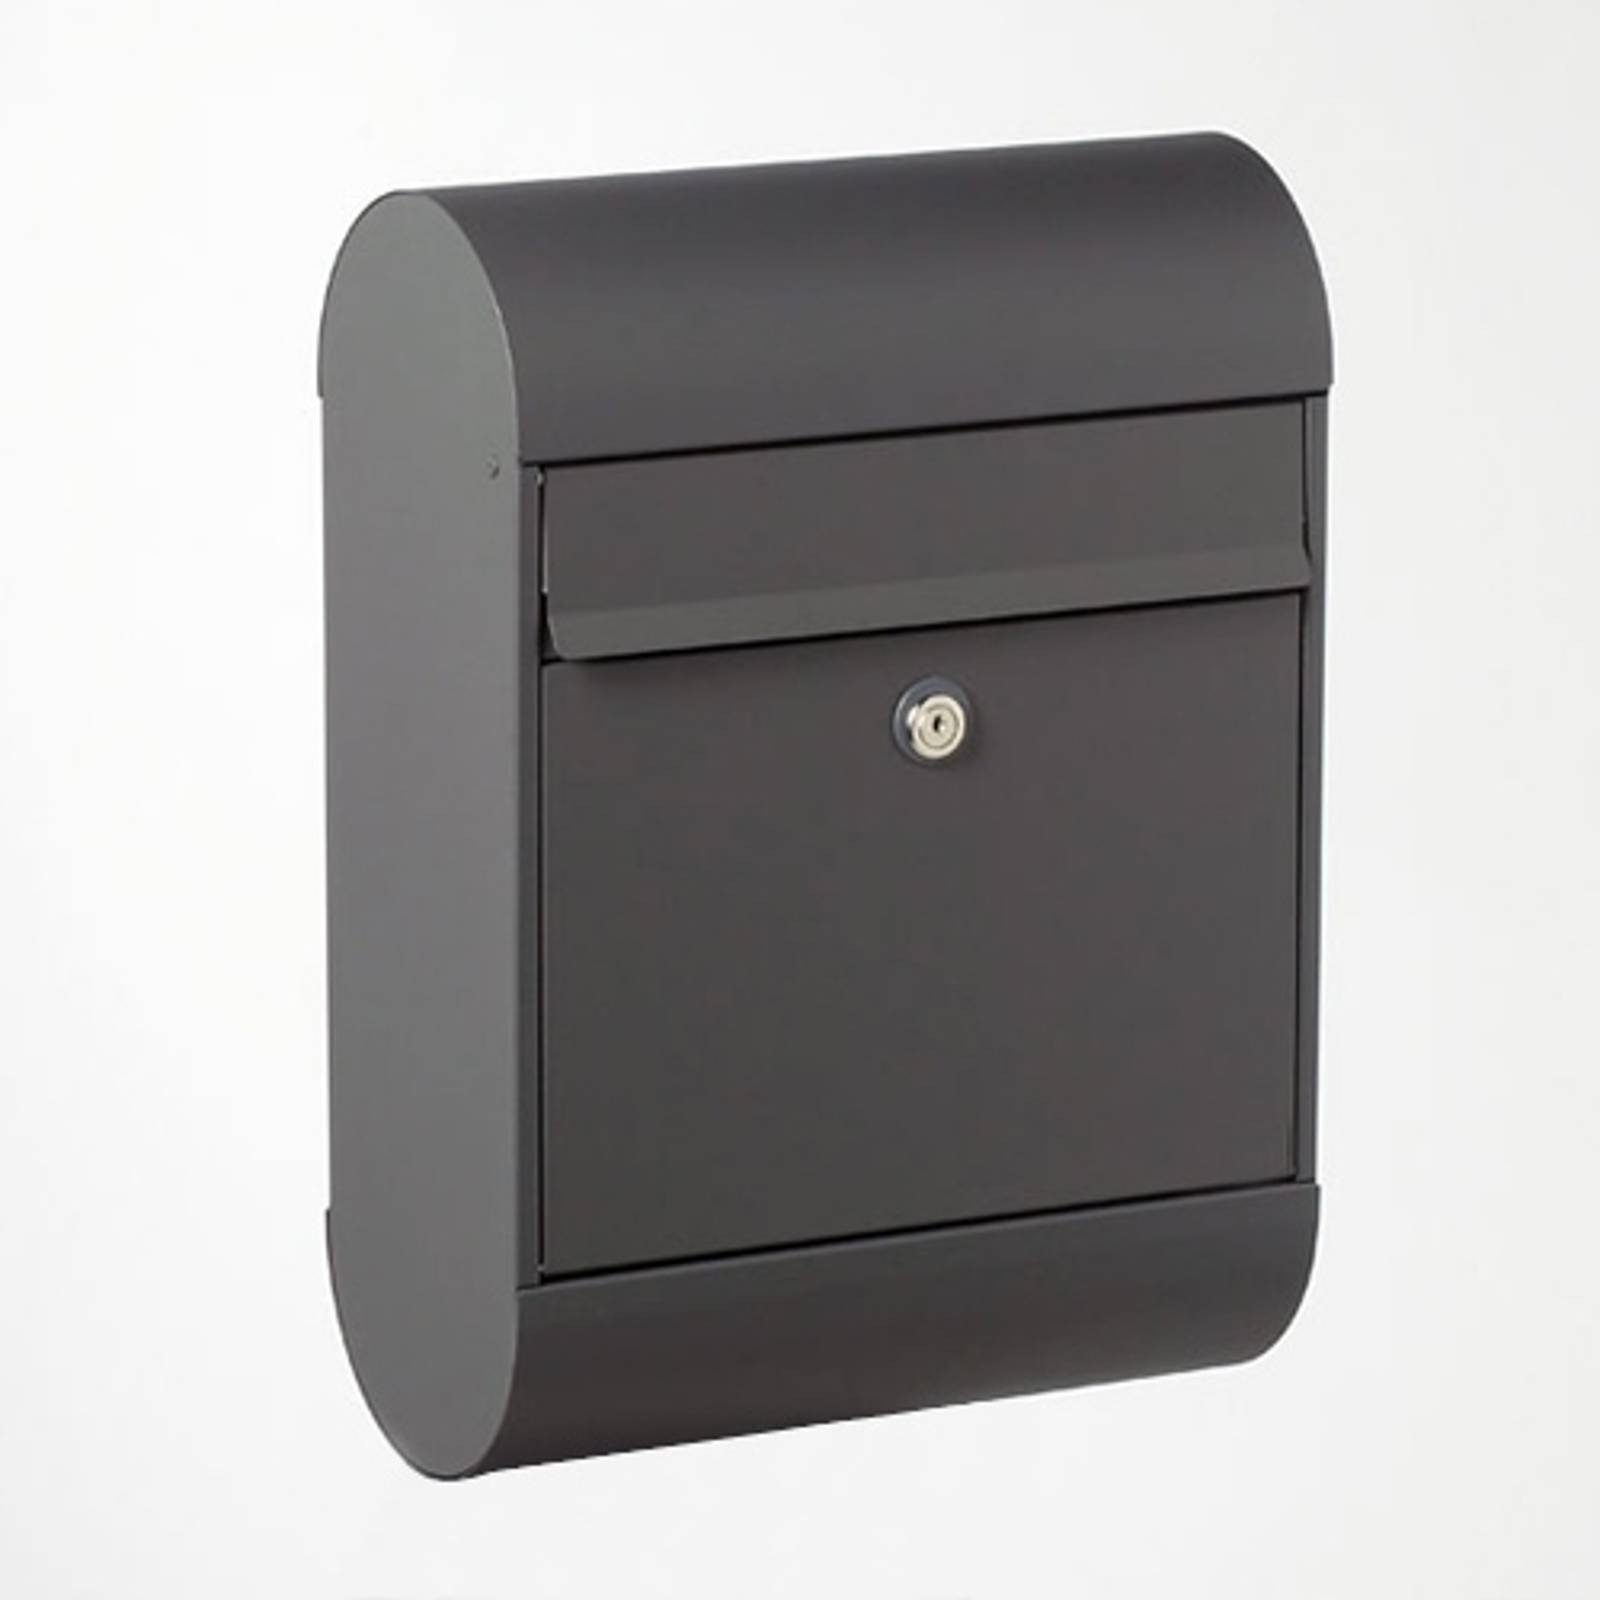 Scandinavian letterbox 6000, black from Juliana